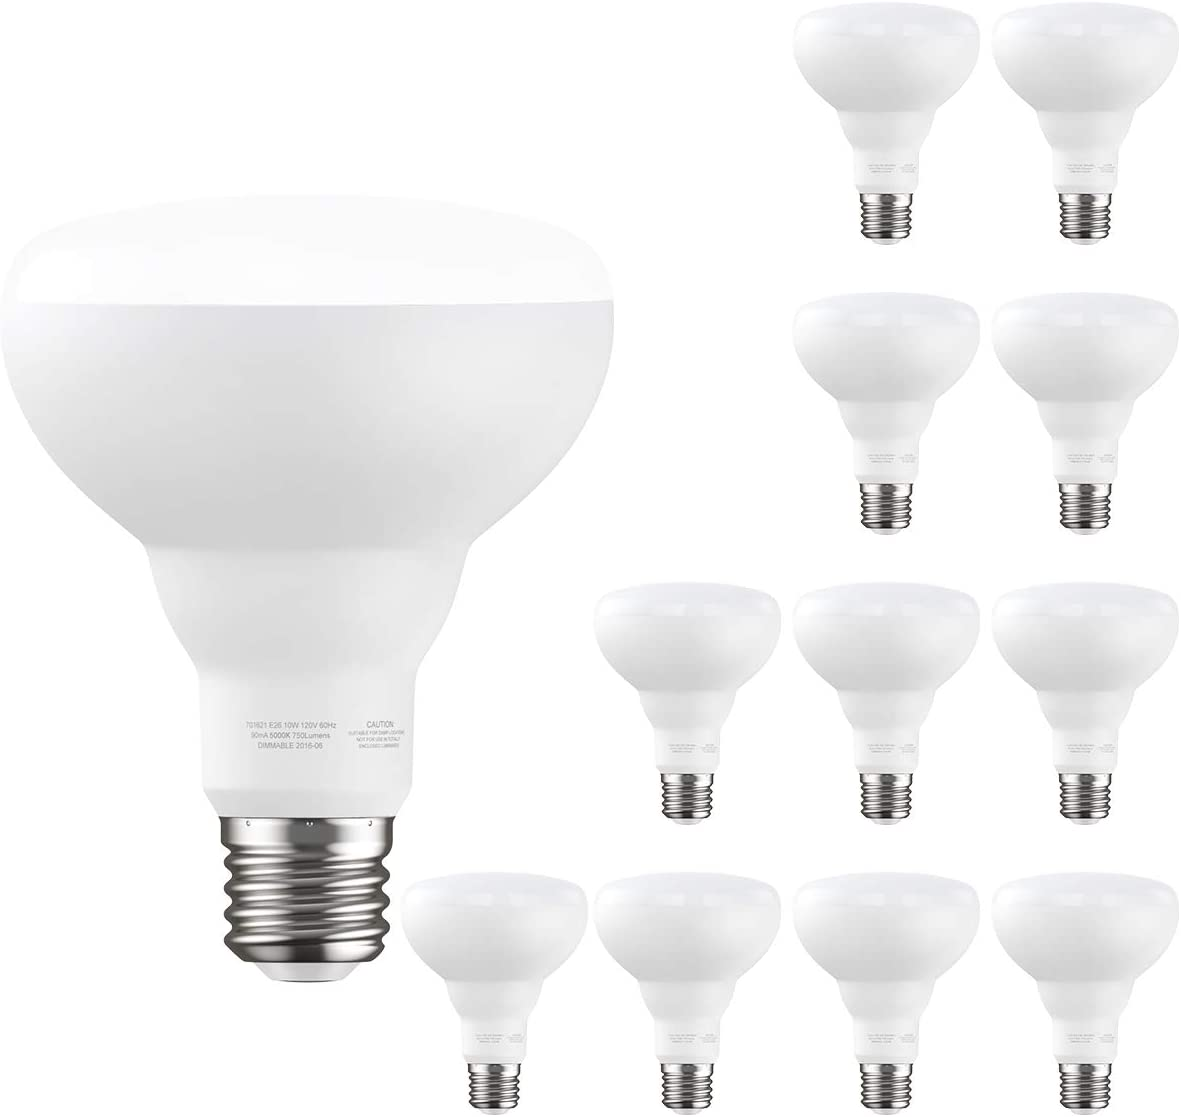 12 Pack Flood Light Bulb Dimmable, BR30 E26 LED Bulb, 10W 750lm, 65W Equivalent, 2700K Soft White Indoor Recessed Can Light Bulb for Ceiling, Bedrooms, Kitchens, Living Rooms